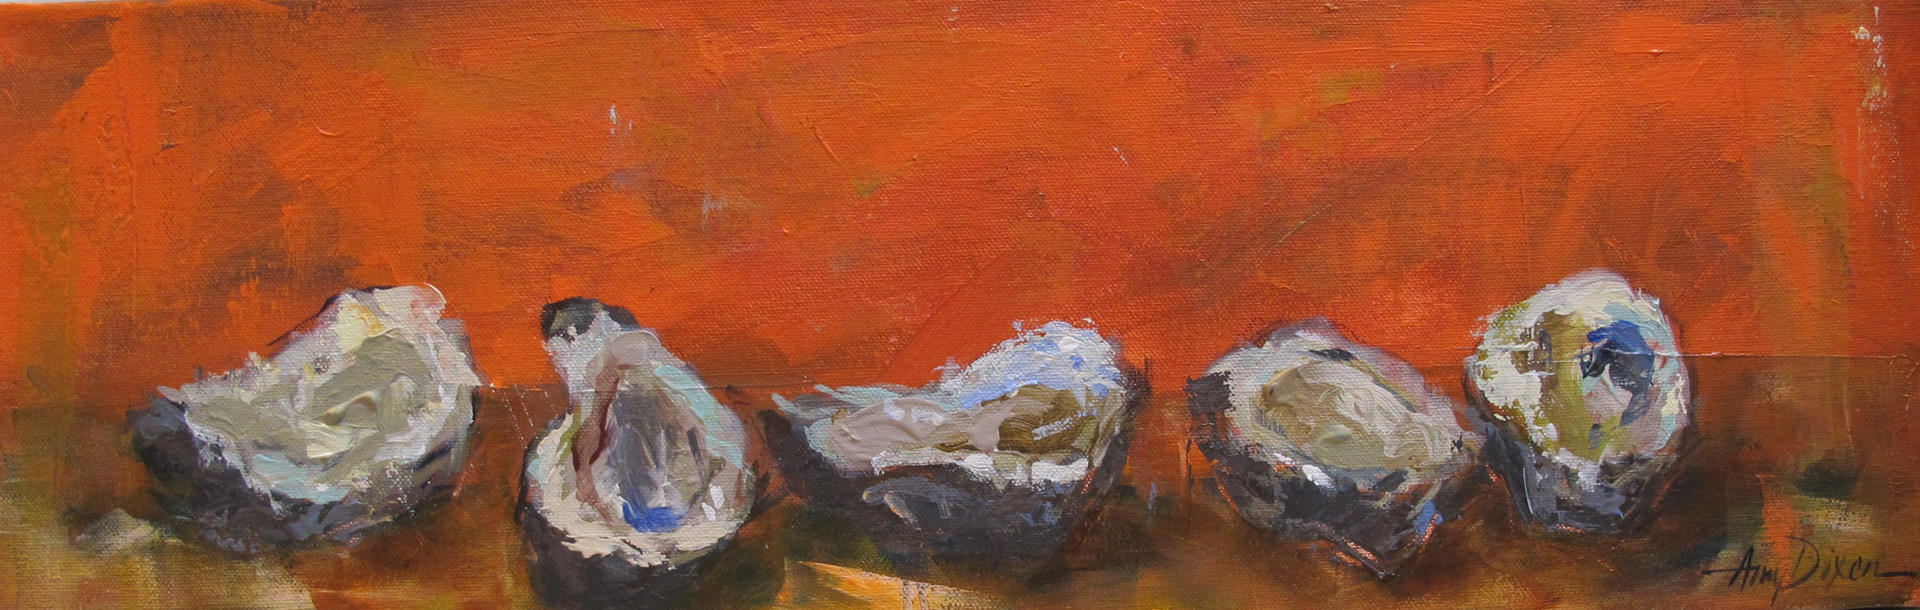 Oysters on Orange by Amy Dixon